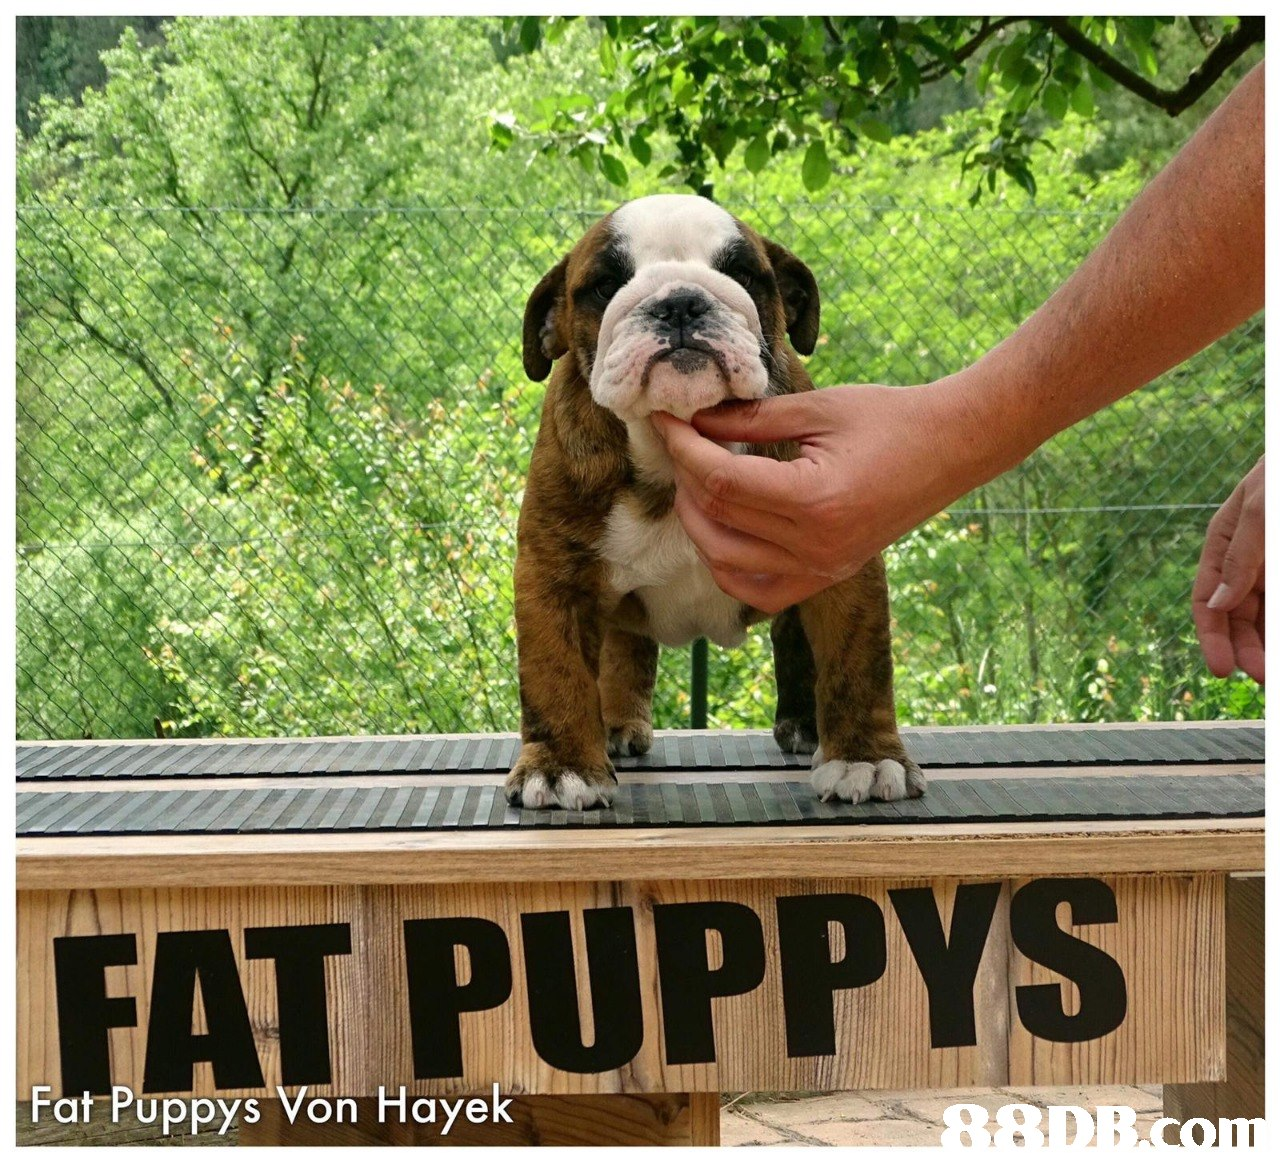 FAT PUPPY Fat Puppys Von Hayek  dog,dog like mammal,dog breed,mammal,vertebrate